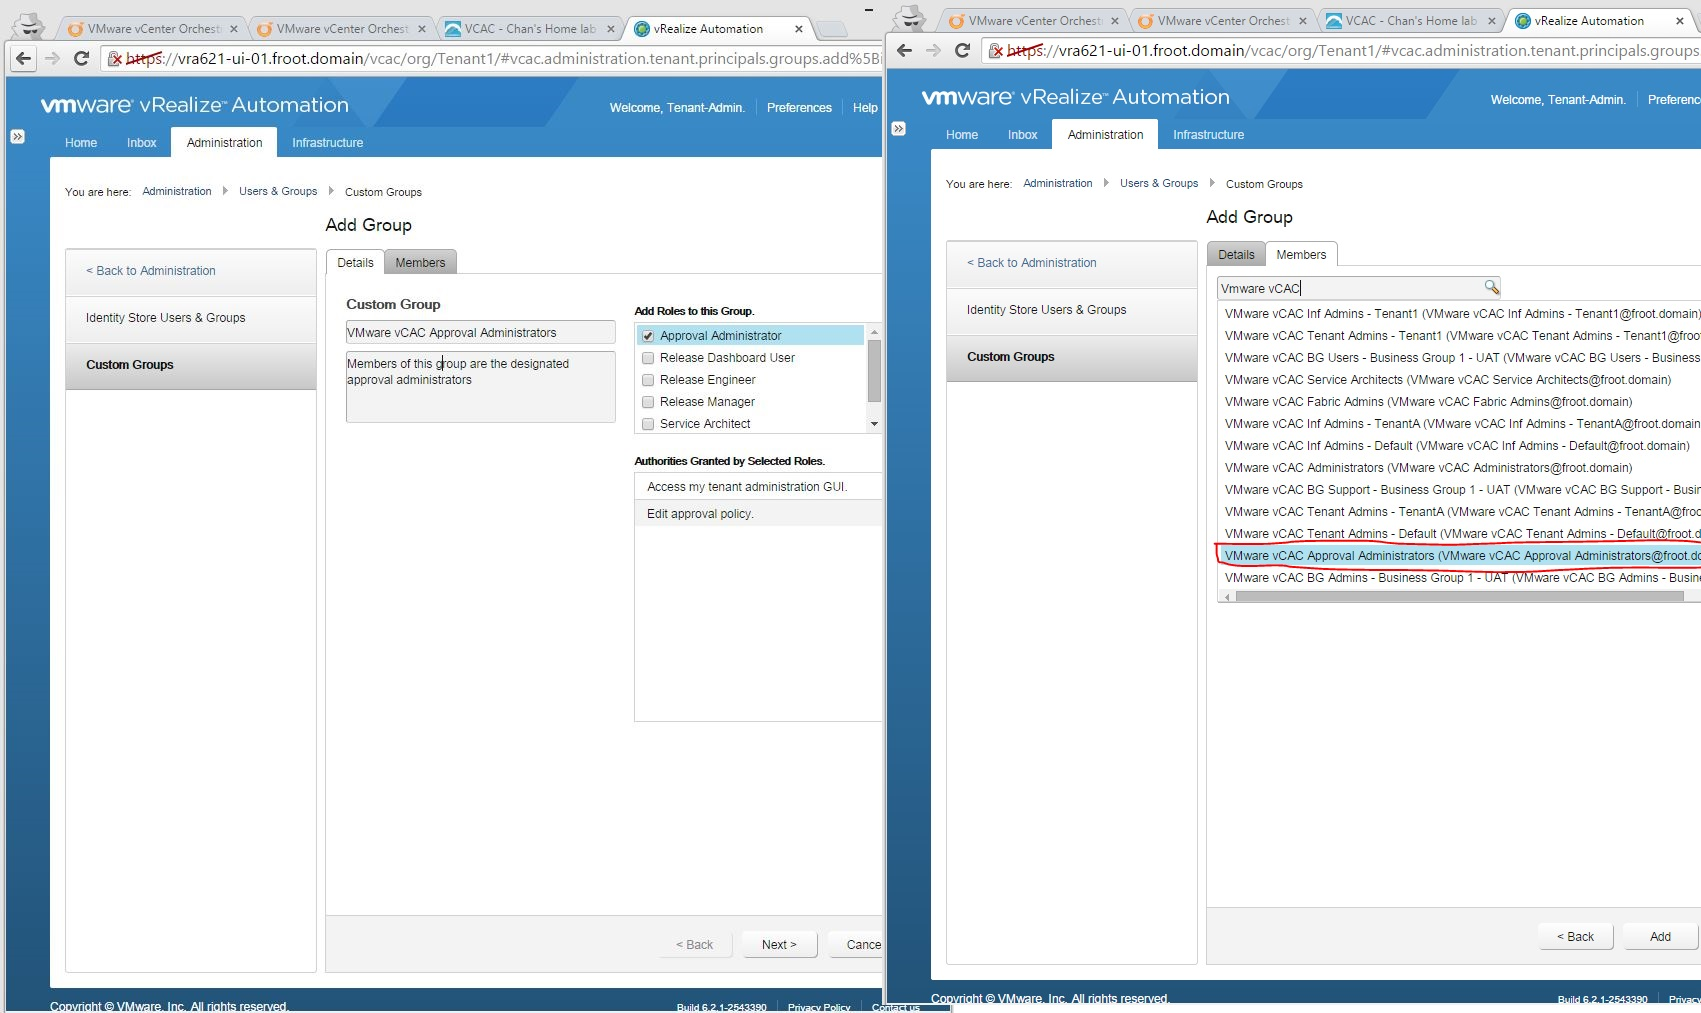 Vmware vrealize automation part 7 tenant administrator basic configure custom groups approval administrator release dashboard user release engineer release manager service architect roles malvernweather Image collections